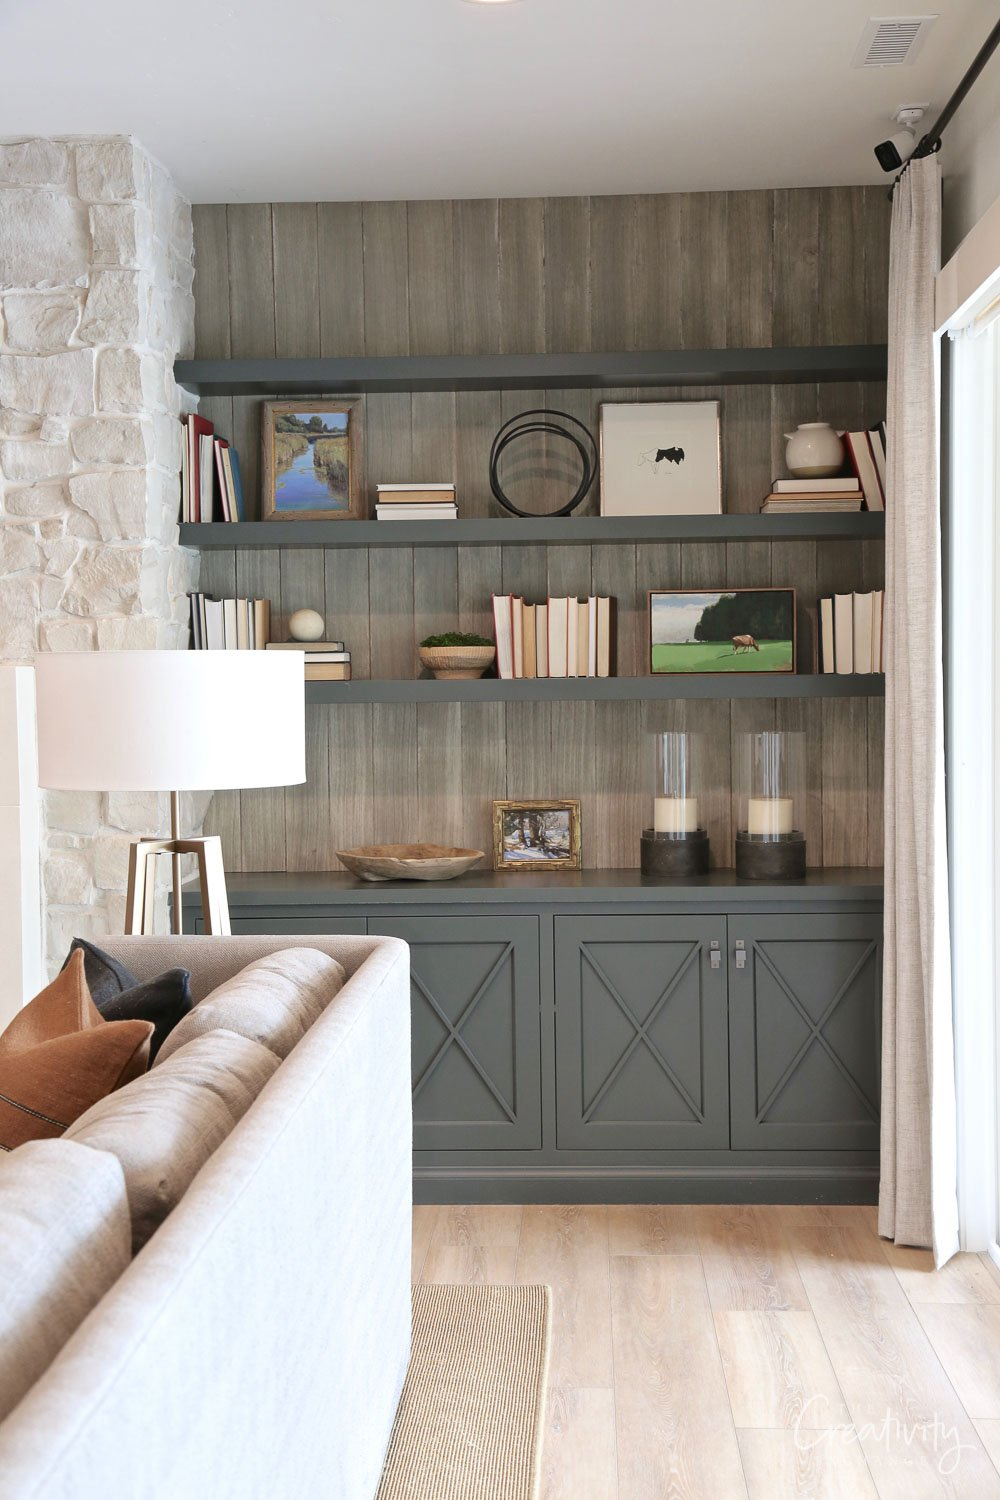 Built-in cabinets paint with Farrow and Ball Studio Green